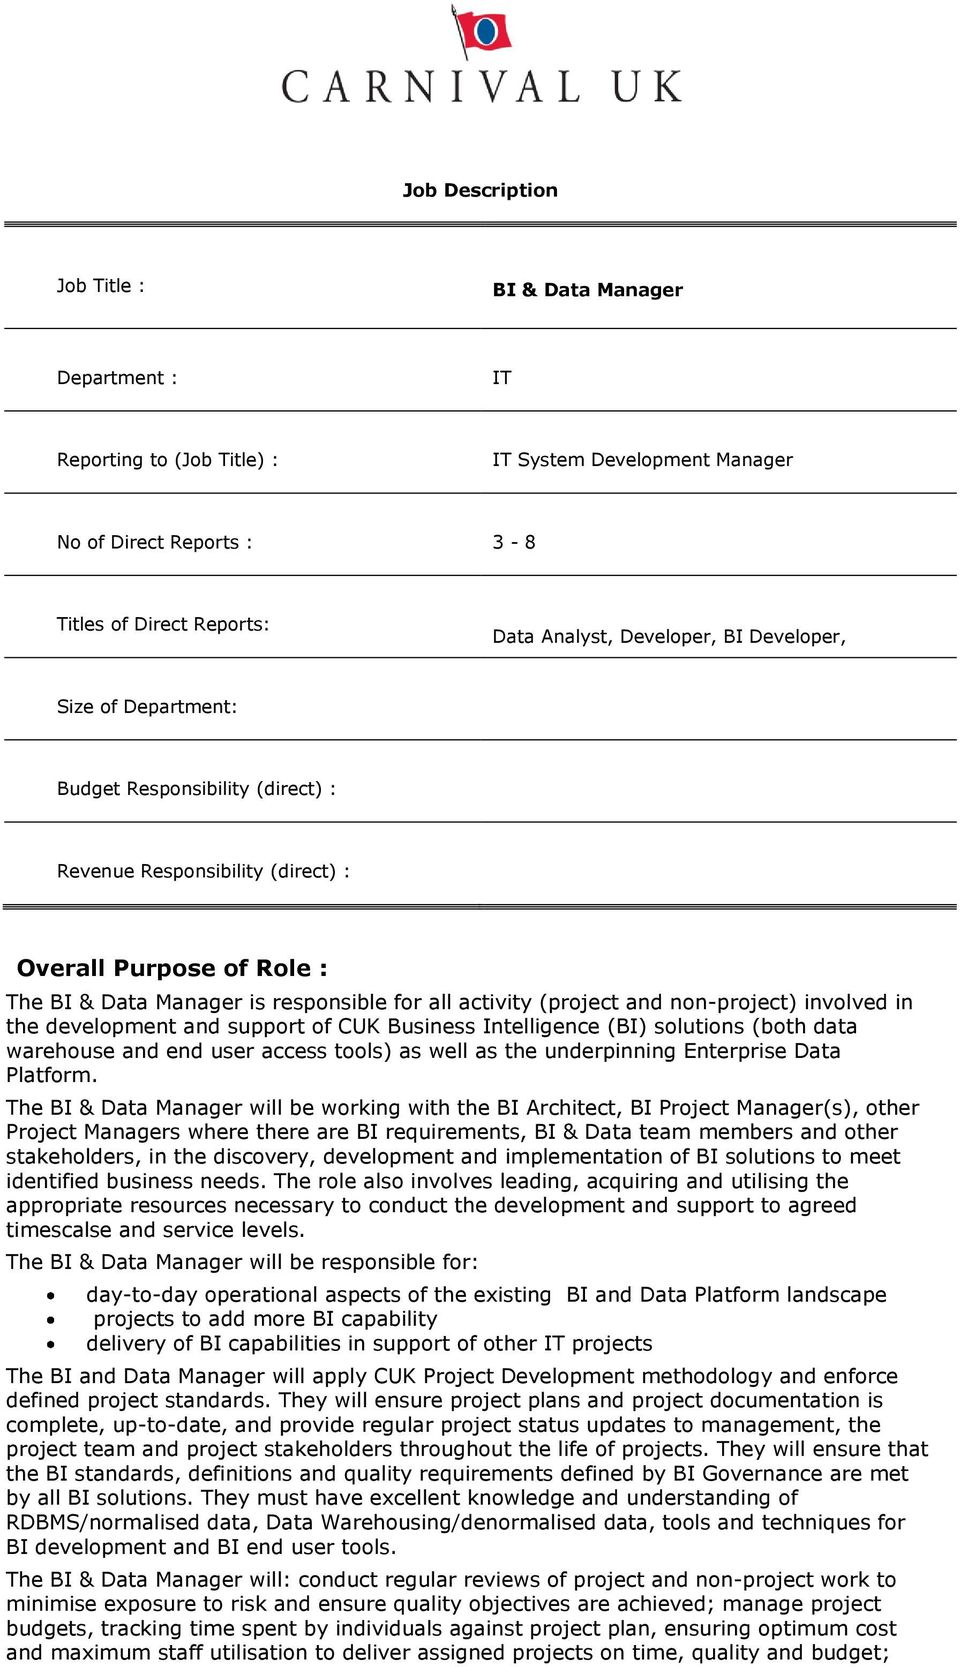 Job Description  BI & Data Manager  Titles of Direct Reports